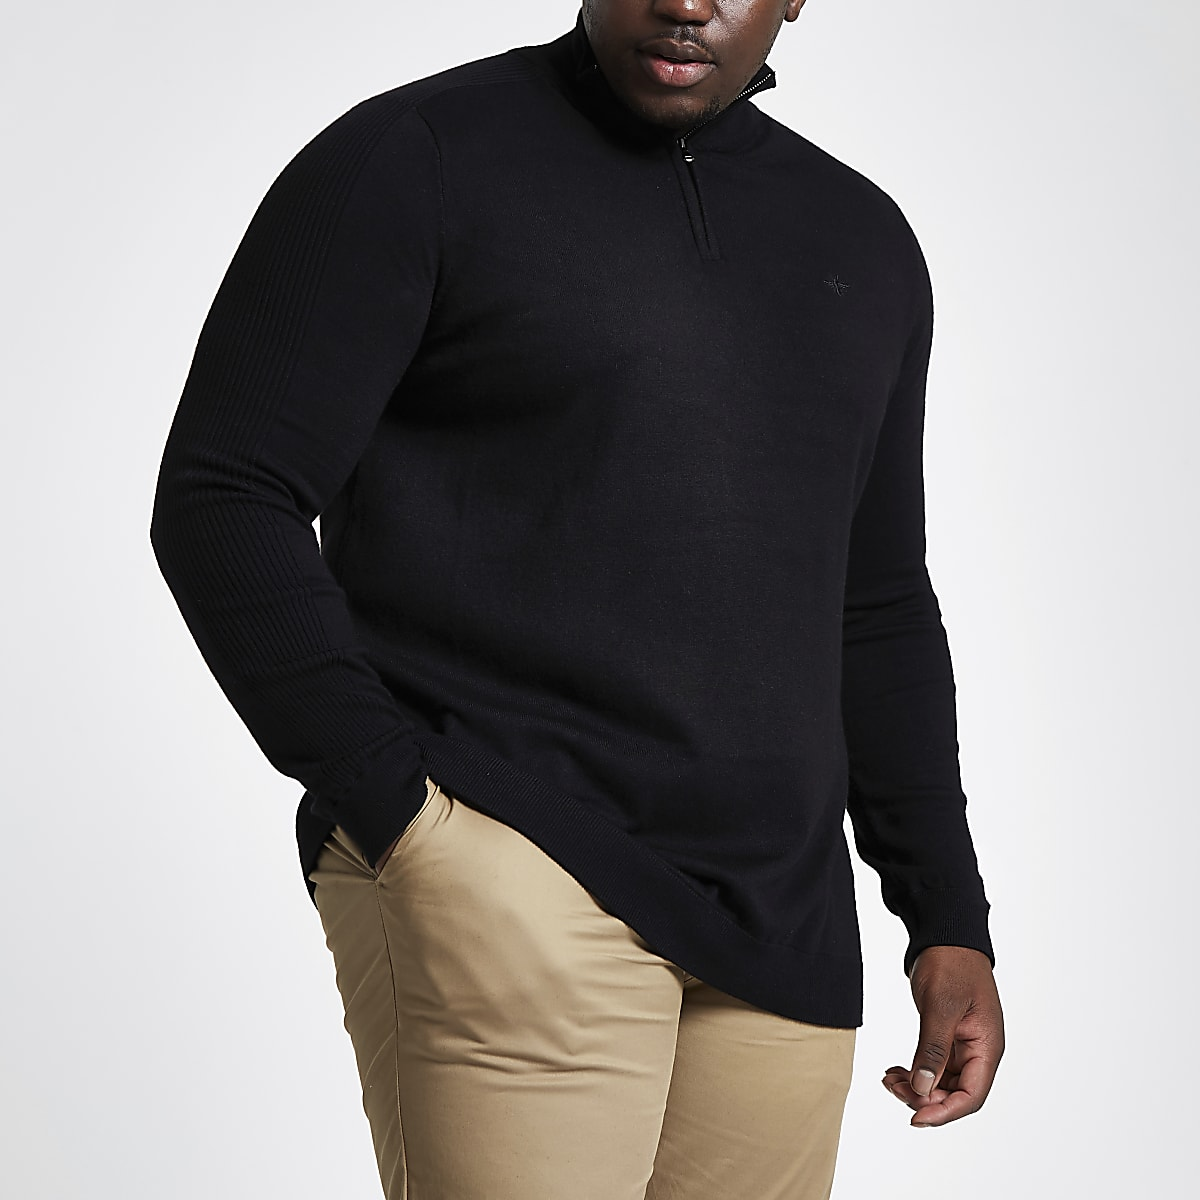 Big and Tall black knit zip up jumper